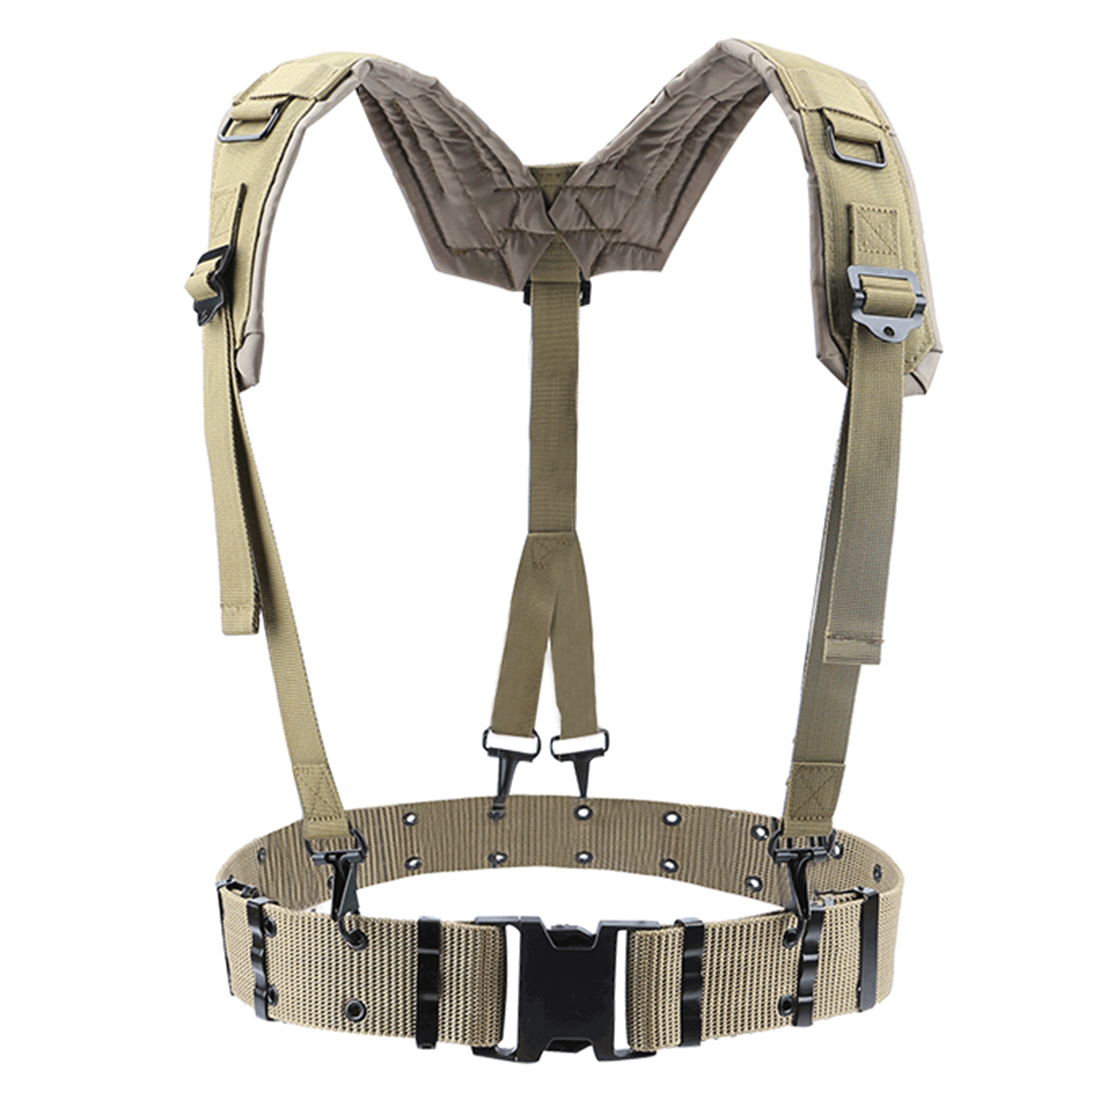 HTB1Tas.aOfrK1RjSspbq6A4pFXah - HS Adjustable Tactical Lightweight Waist Belt Harness Set for Outdoor Military Shoulder Waist Protective Band for Adult